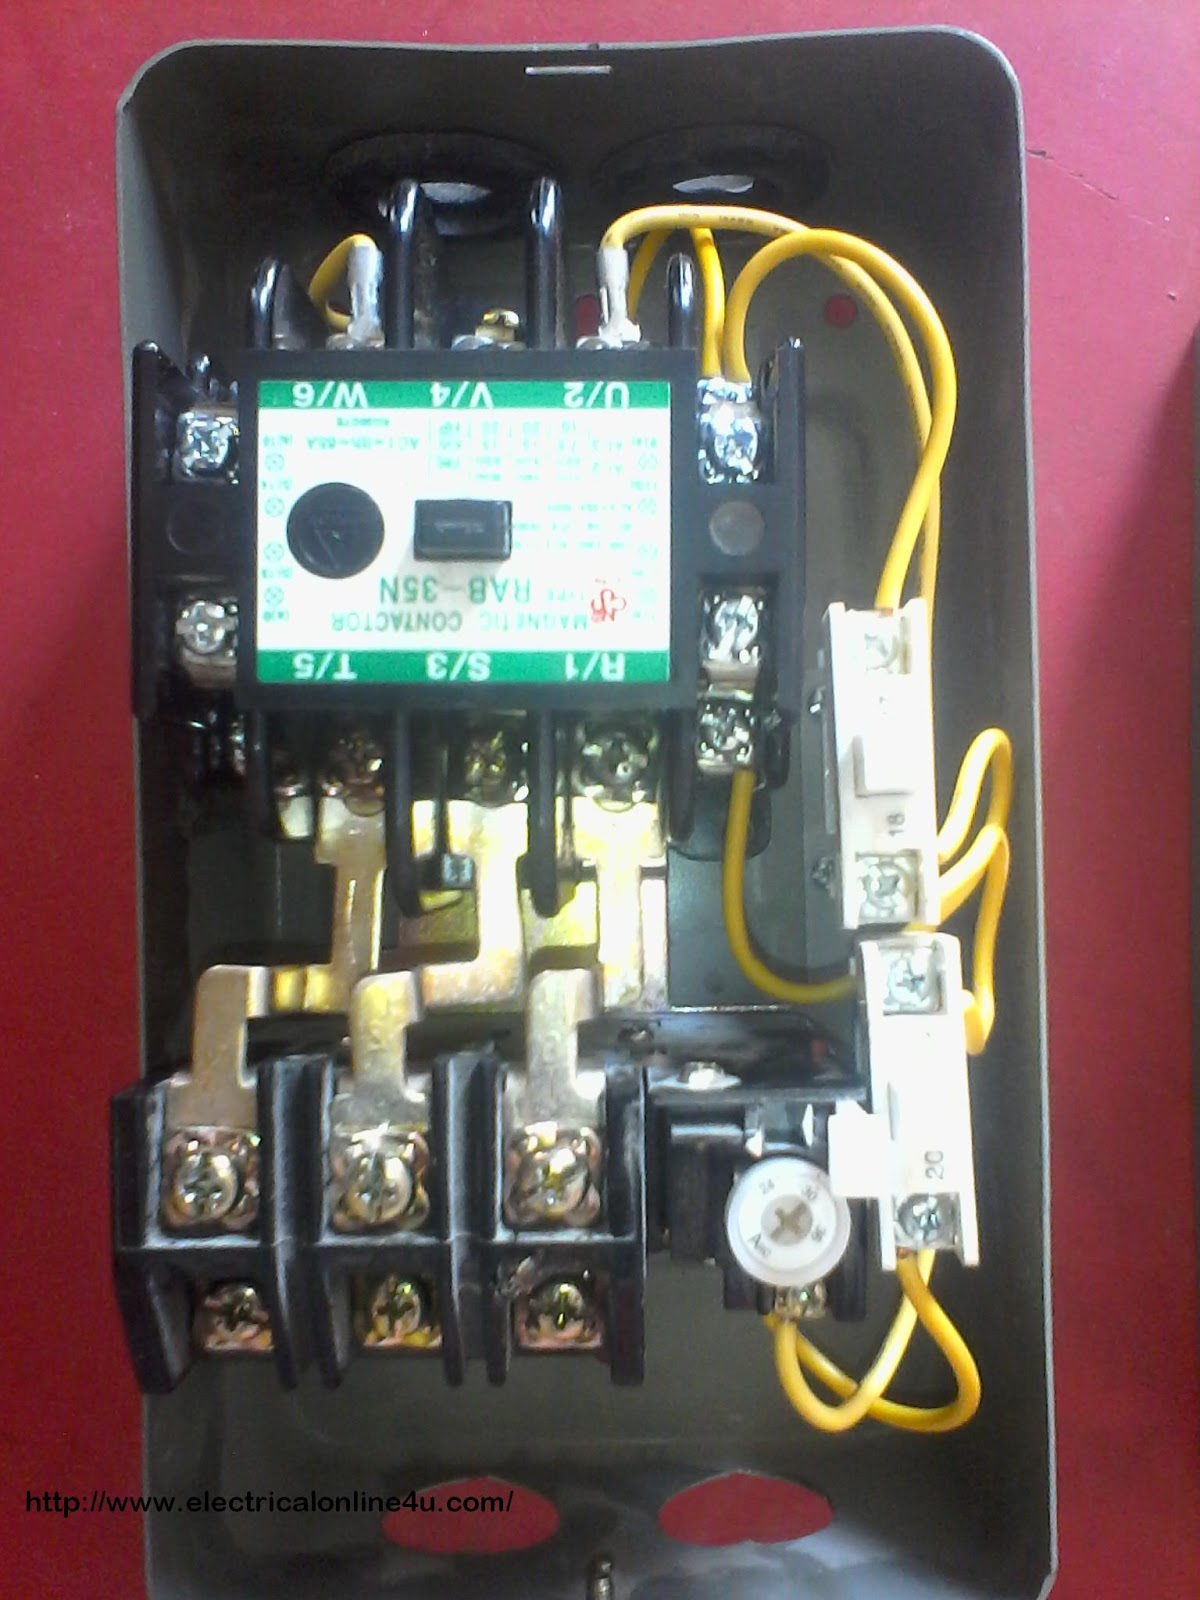 181 together with Msp likewise Pr 13 Phaz Pak 13 Hp Solid State Phase Converter 230 Vac Input 230 Vac Three Phase Output additionally Auto Transformer Starter additionally Post pipe Diagram For  pressor And Dryer 579244. on single phase compressor wiring diagram